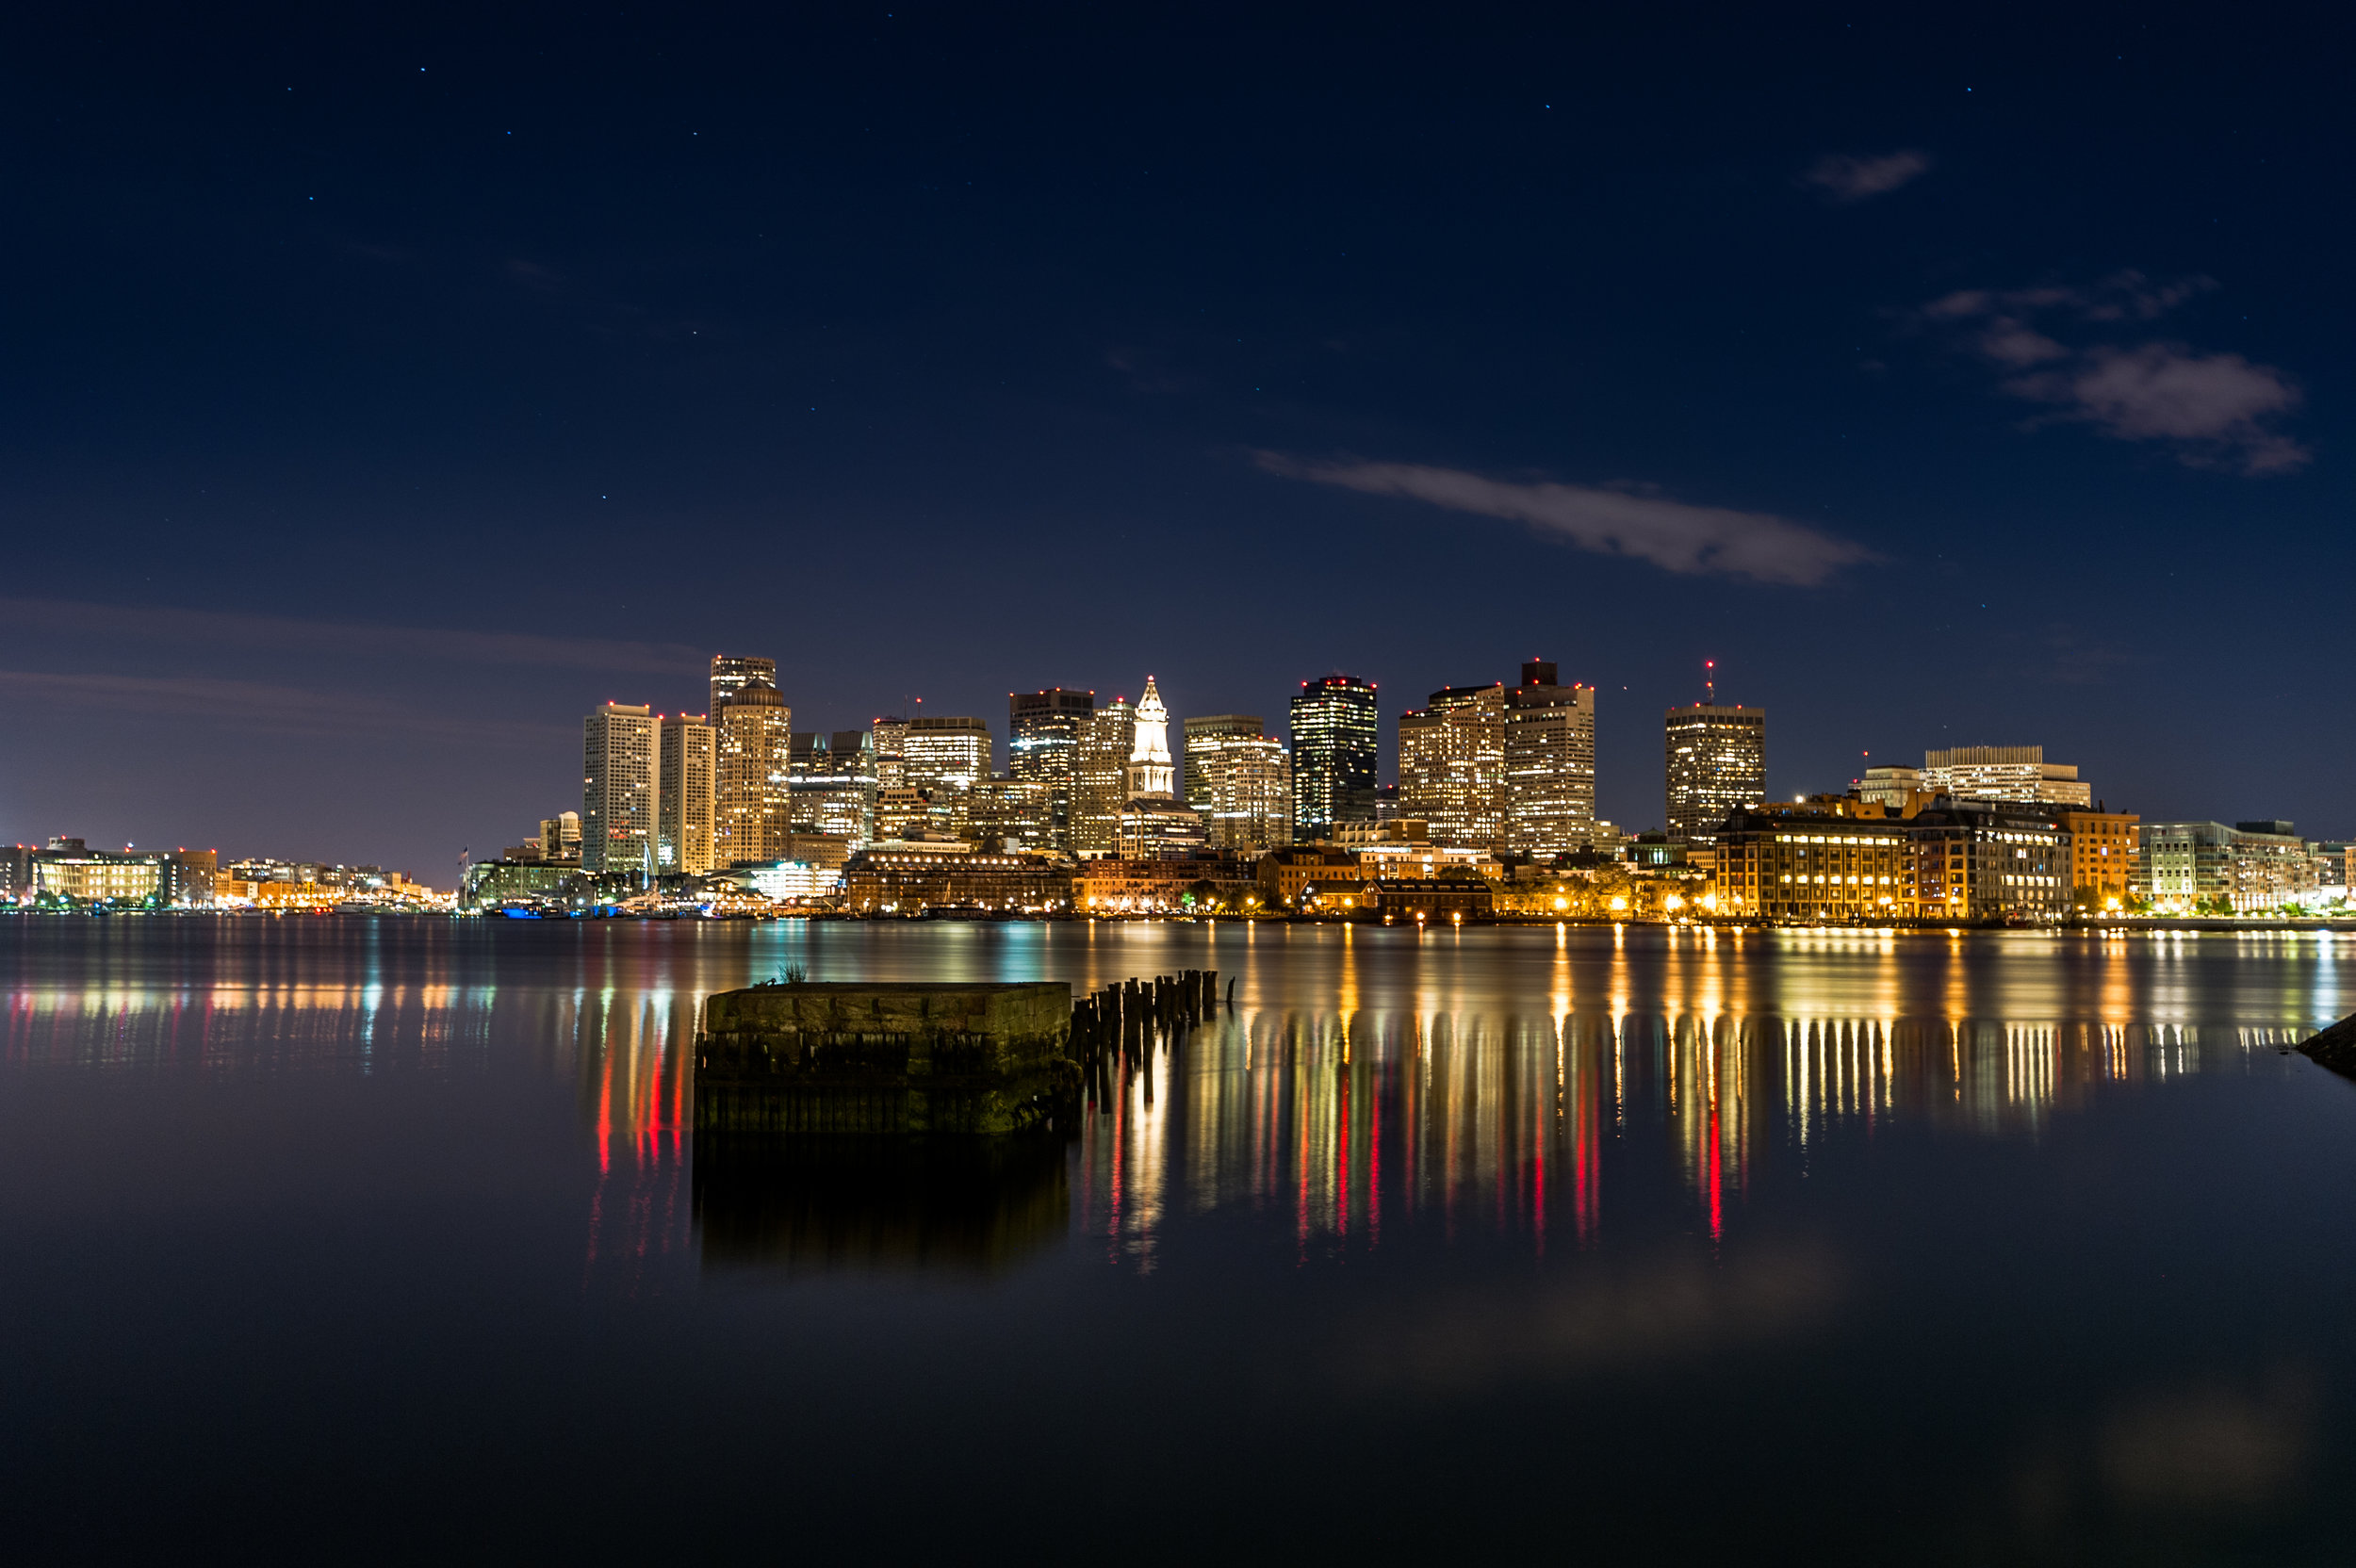 Boston Downtown HDR (click the image to view full size)